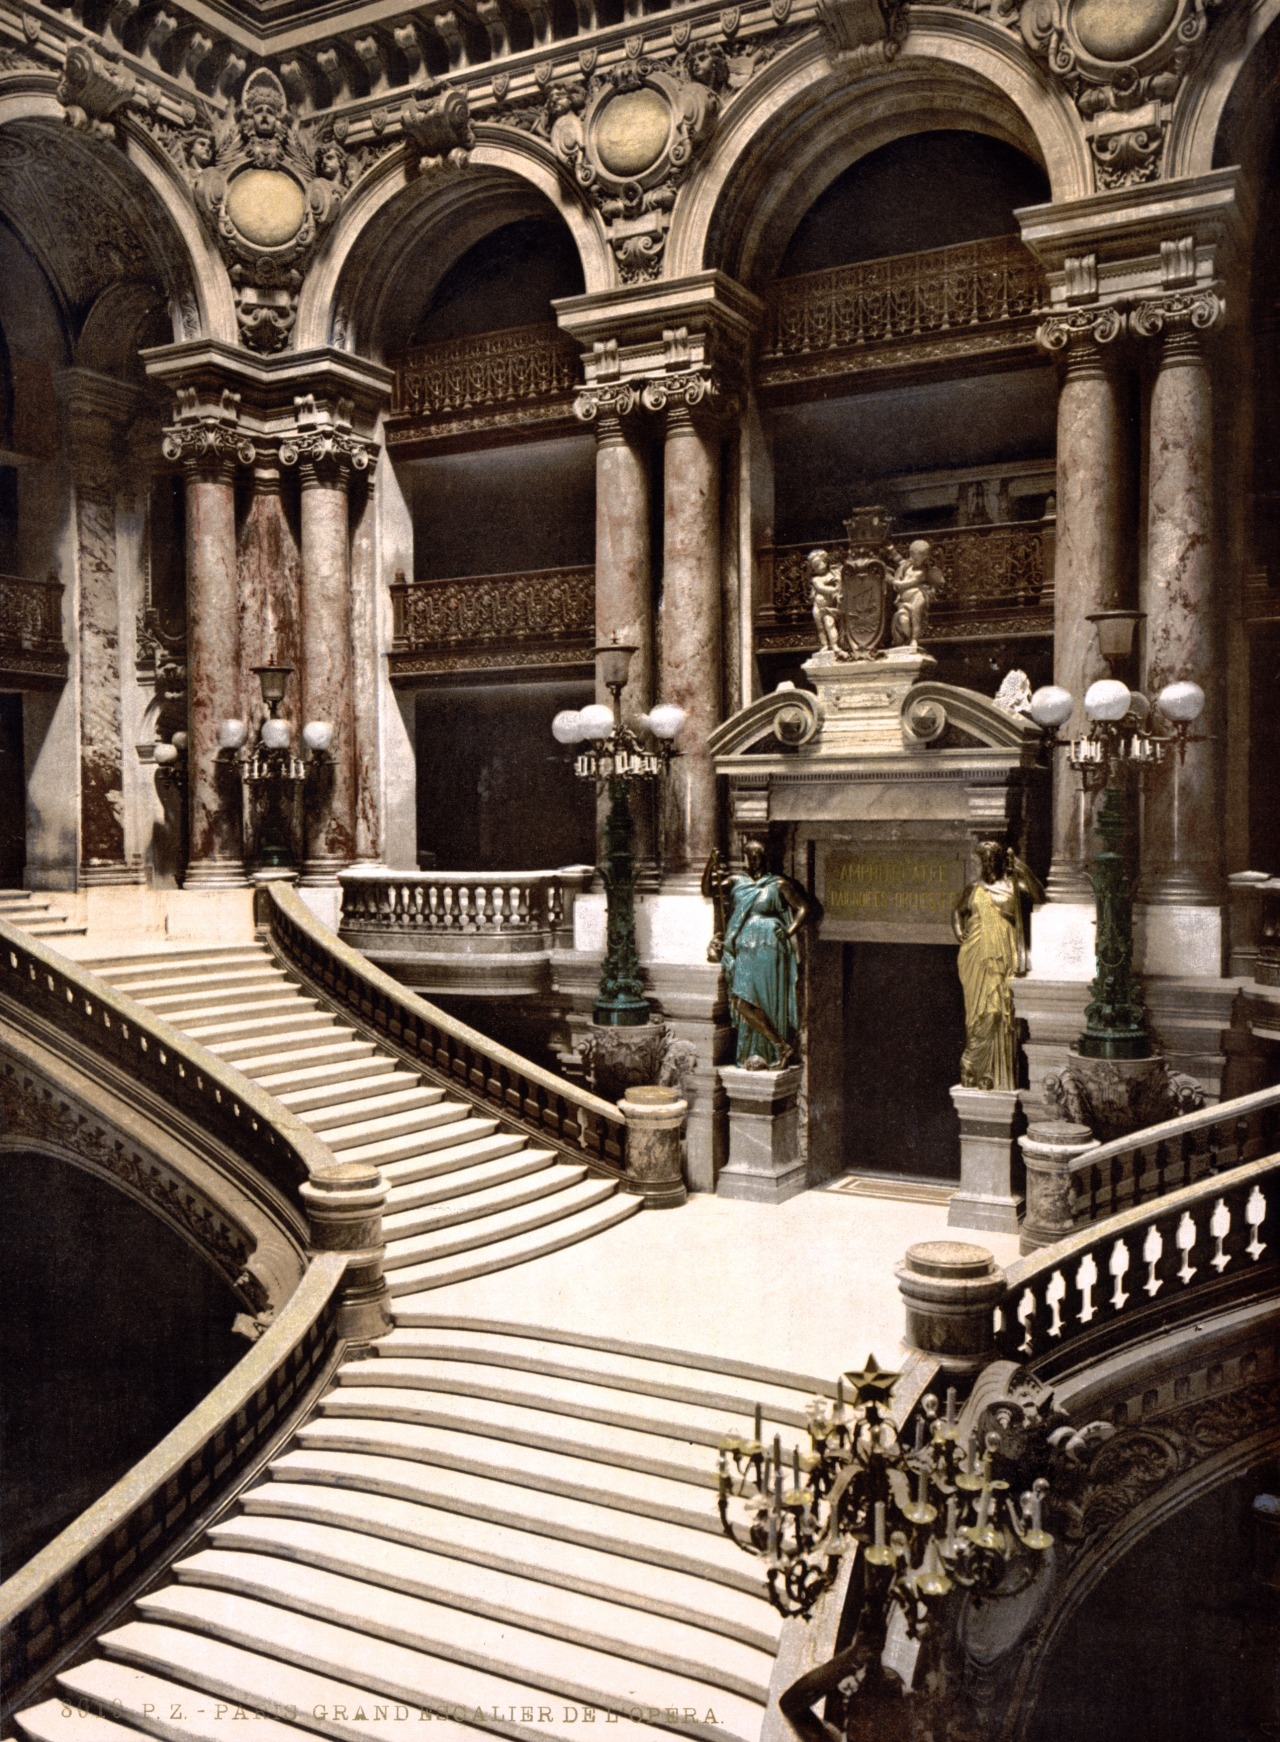 Inside the grand staircase of Charles Garnier's Opera House, Paris